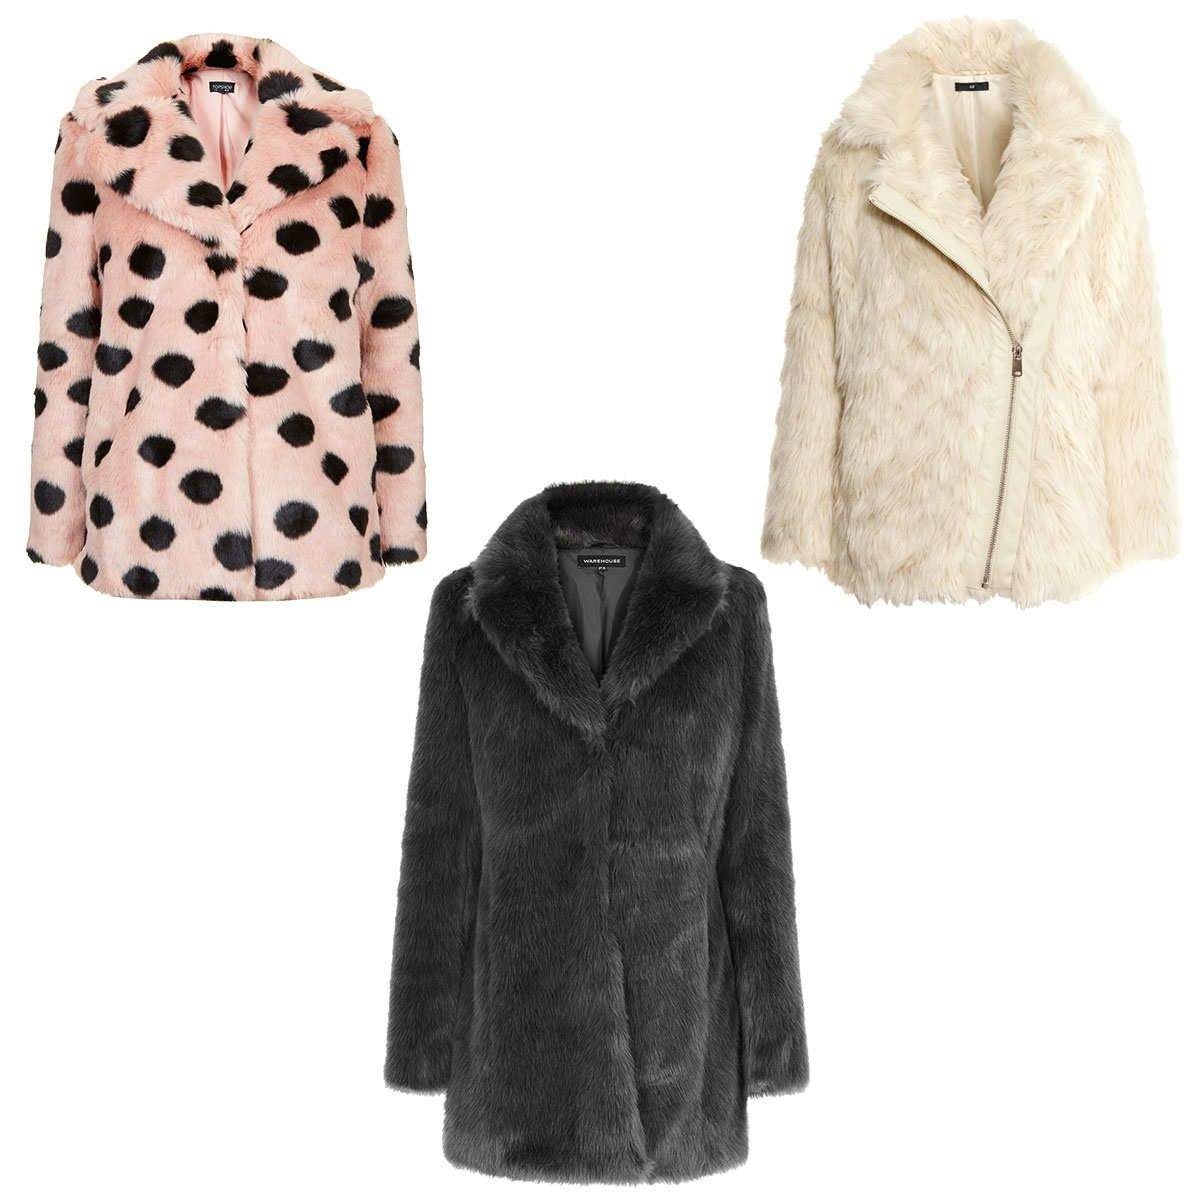 No. 6 — A Thick Faux-Fur Jacket The sheer thickness of faux-fur jackets offers up plenty of insulation while adding texture to an outfit, especially when it comes to dressing for a night out. Here are three more sleek versions if you haven't picked up one yet.